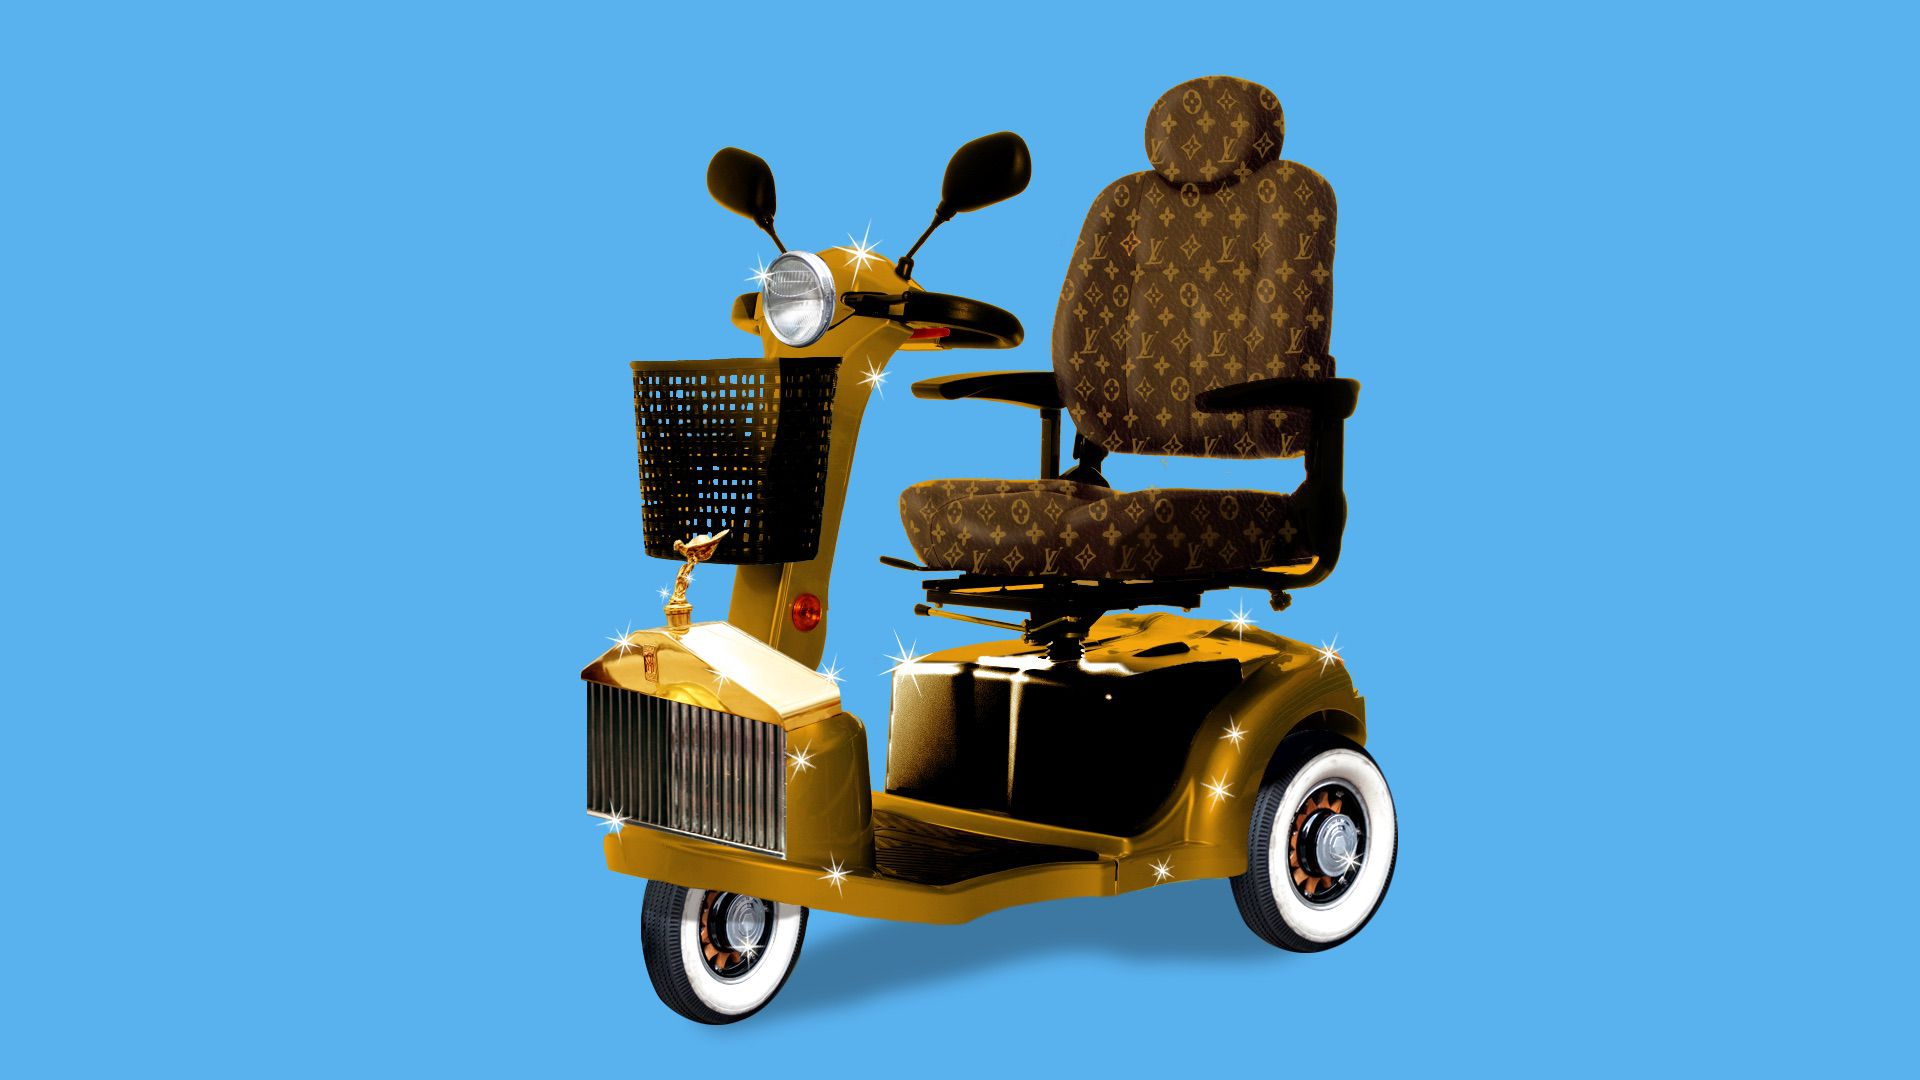 A motorized cart that is gold and really spiffy.